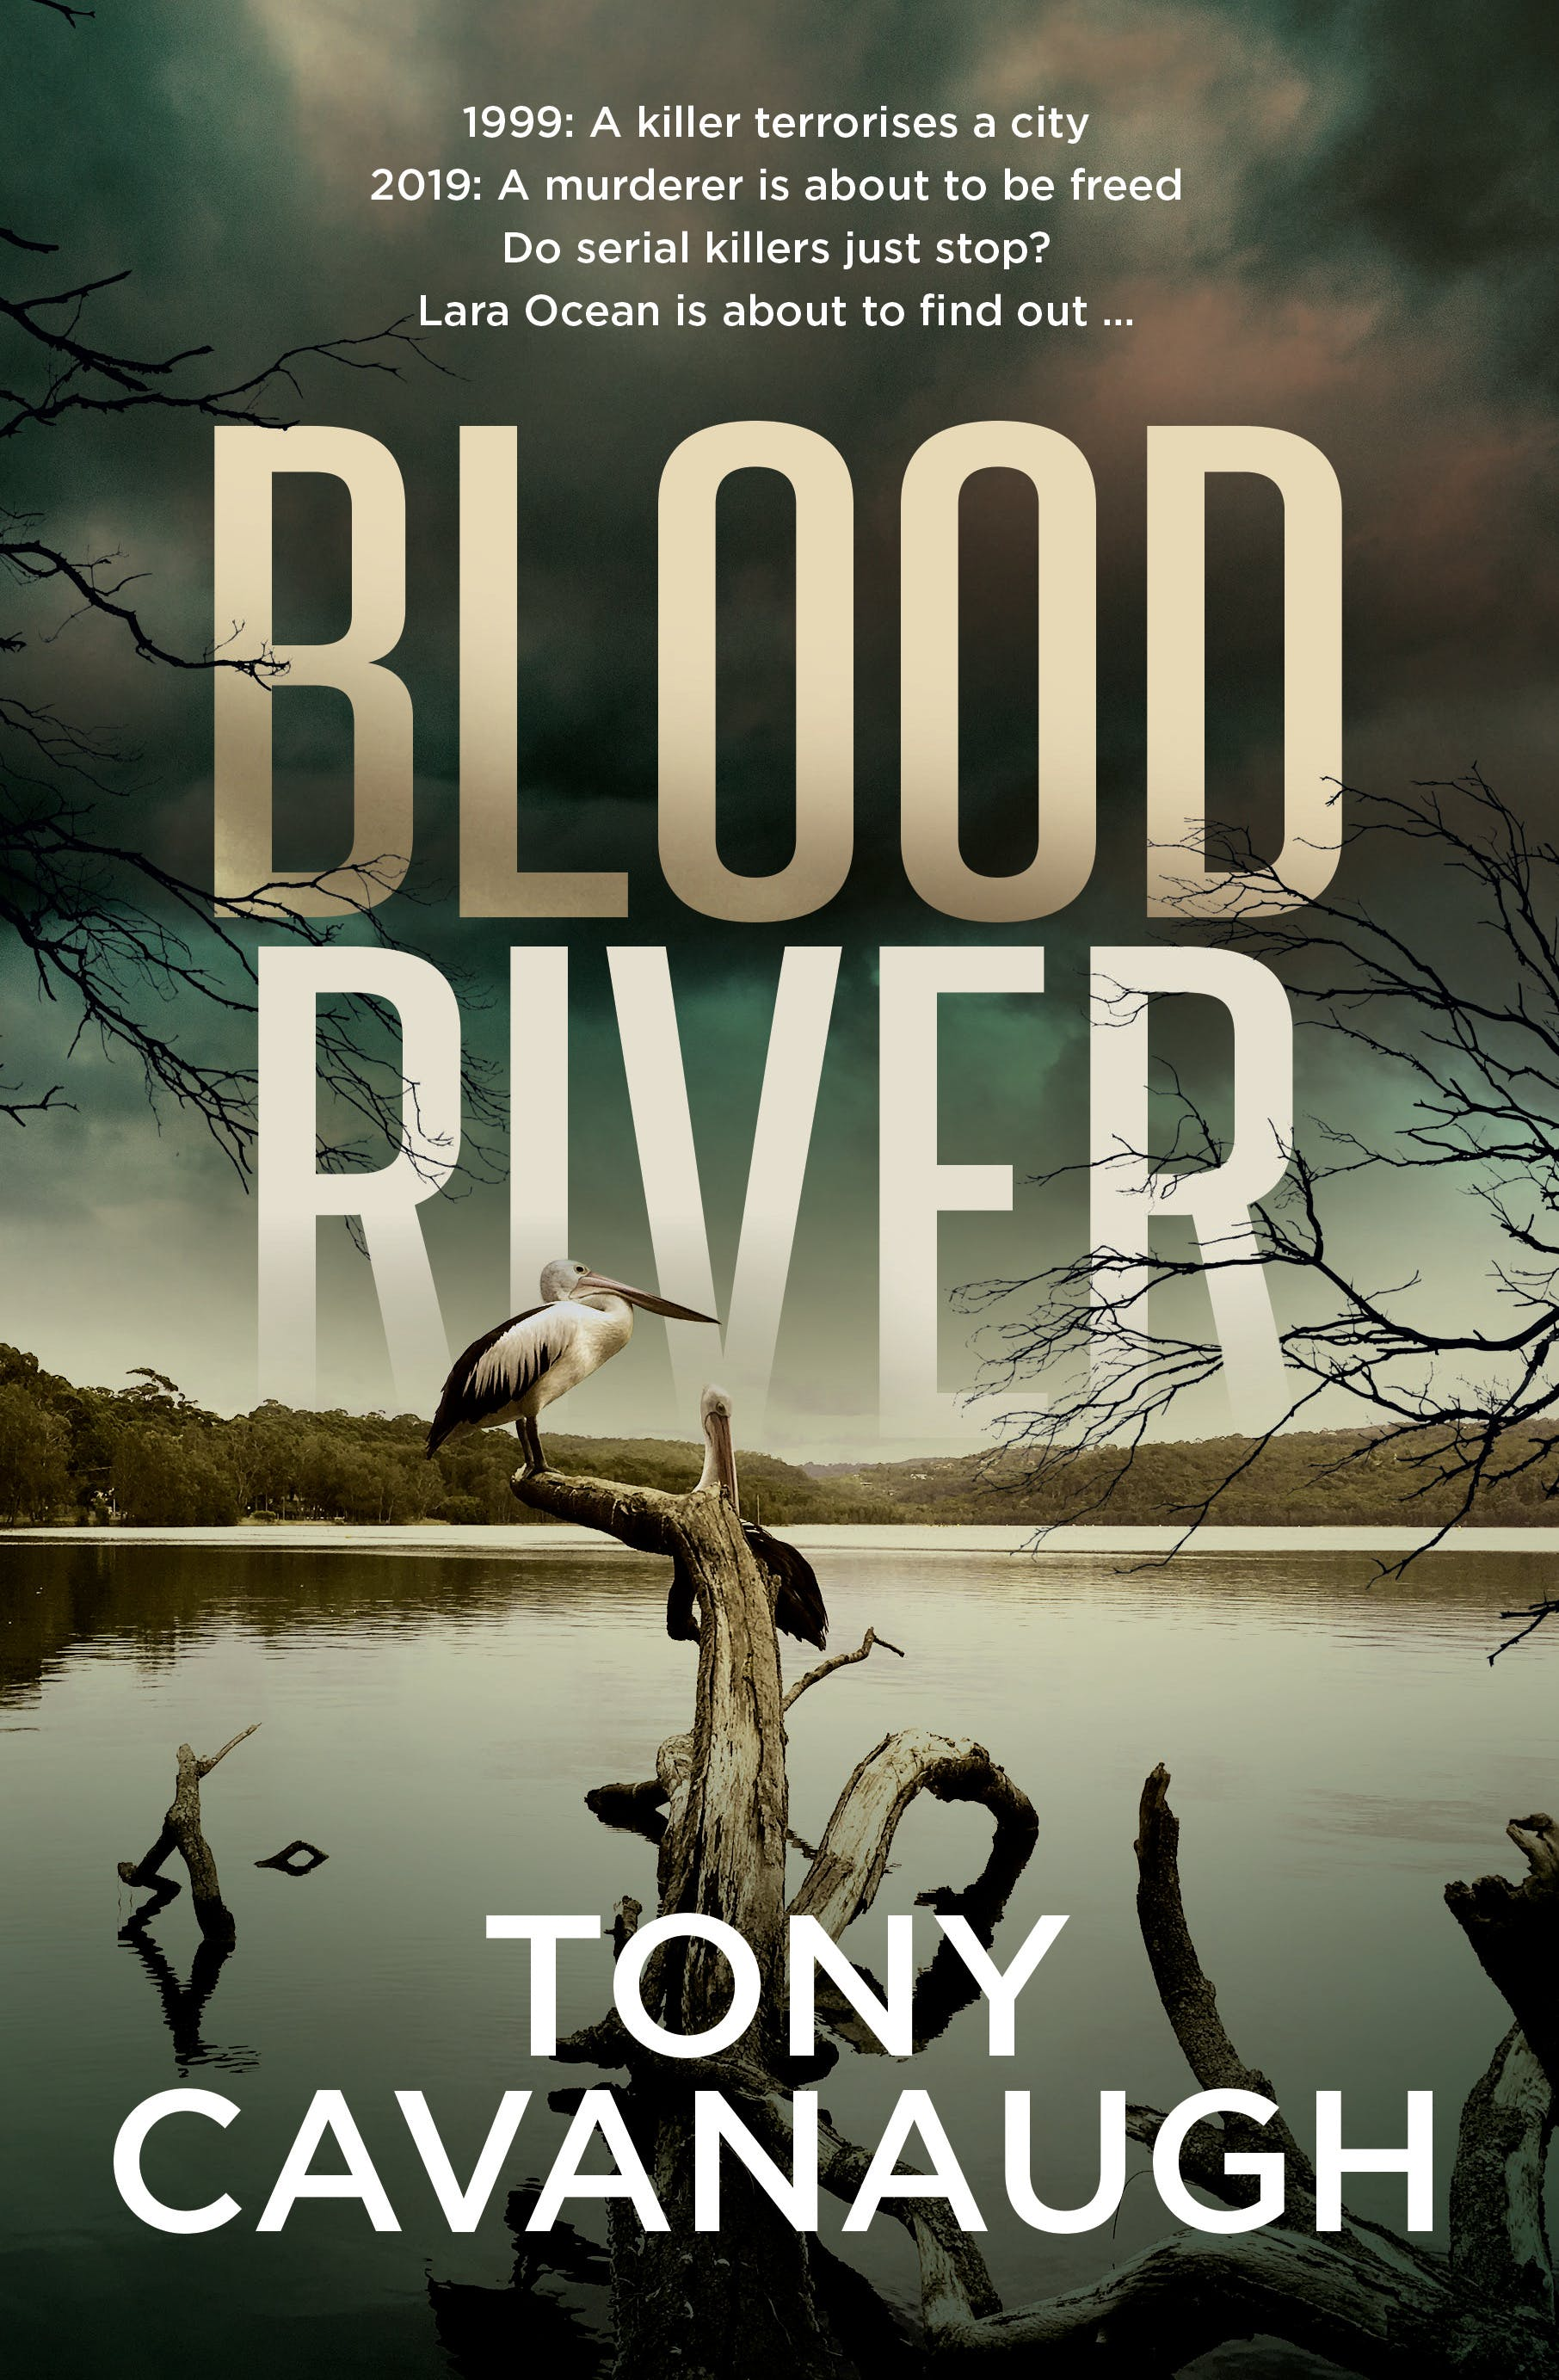 Blood River – the highly ancipated new novel from Tony Cavanaugh – is out now! Get your copy. -